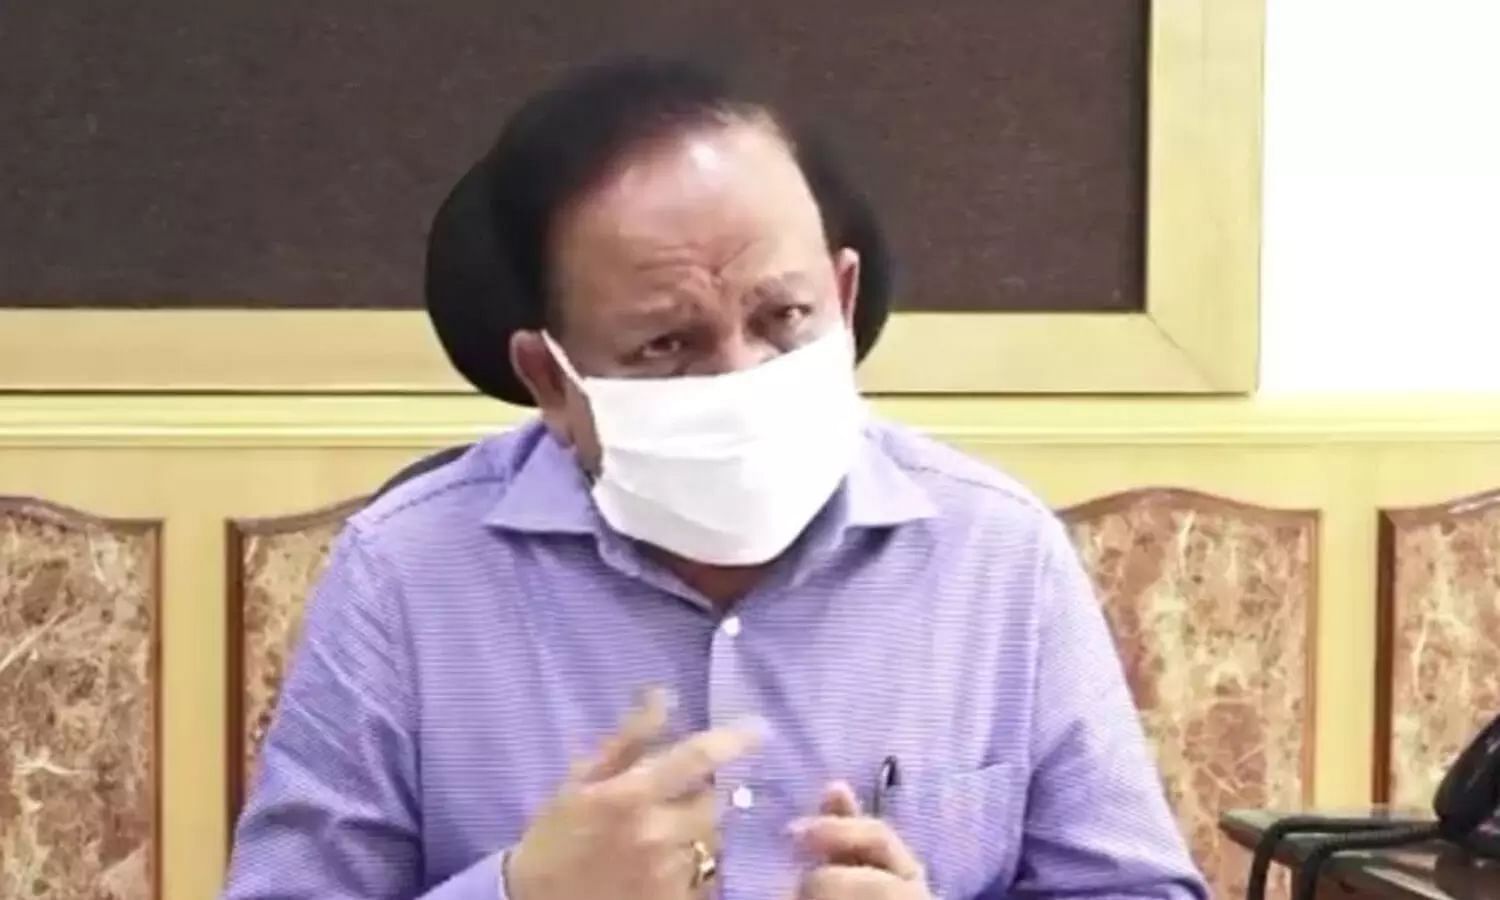 No community transmission of COVID-19 in India, says Health Minister Harsh Vardhan